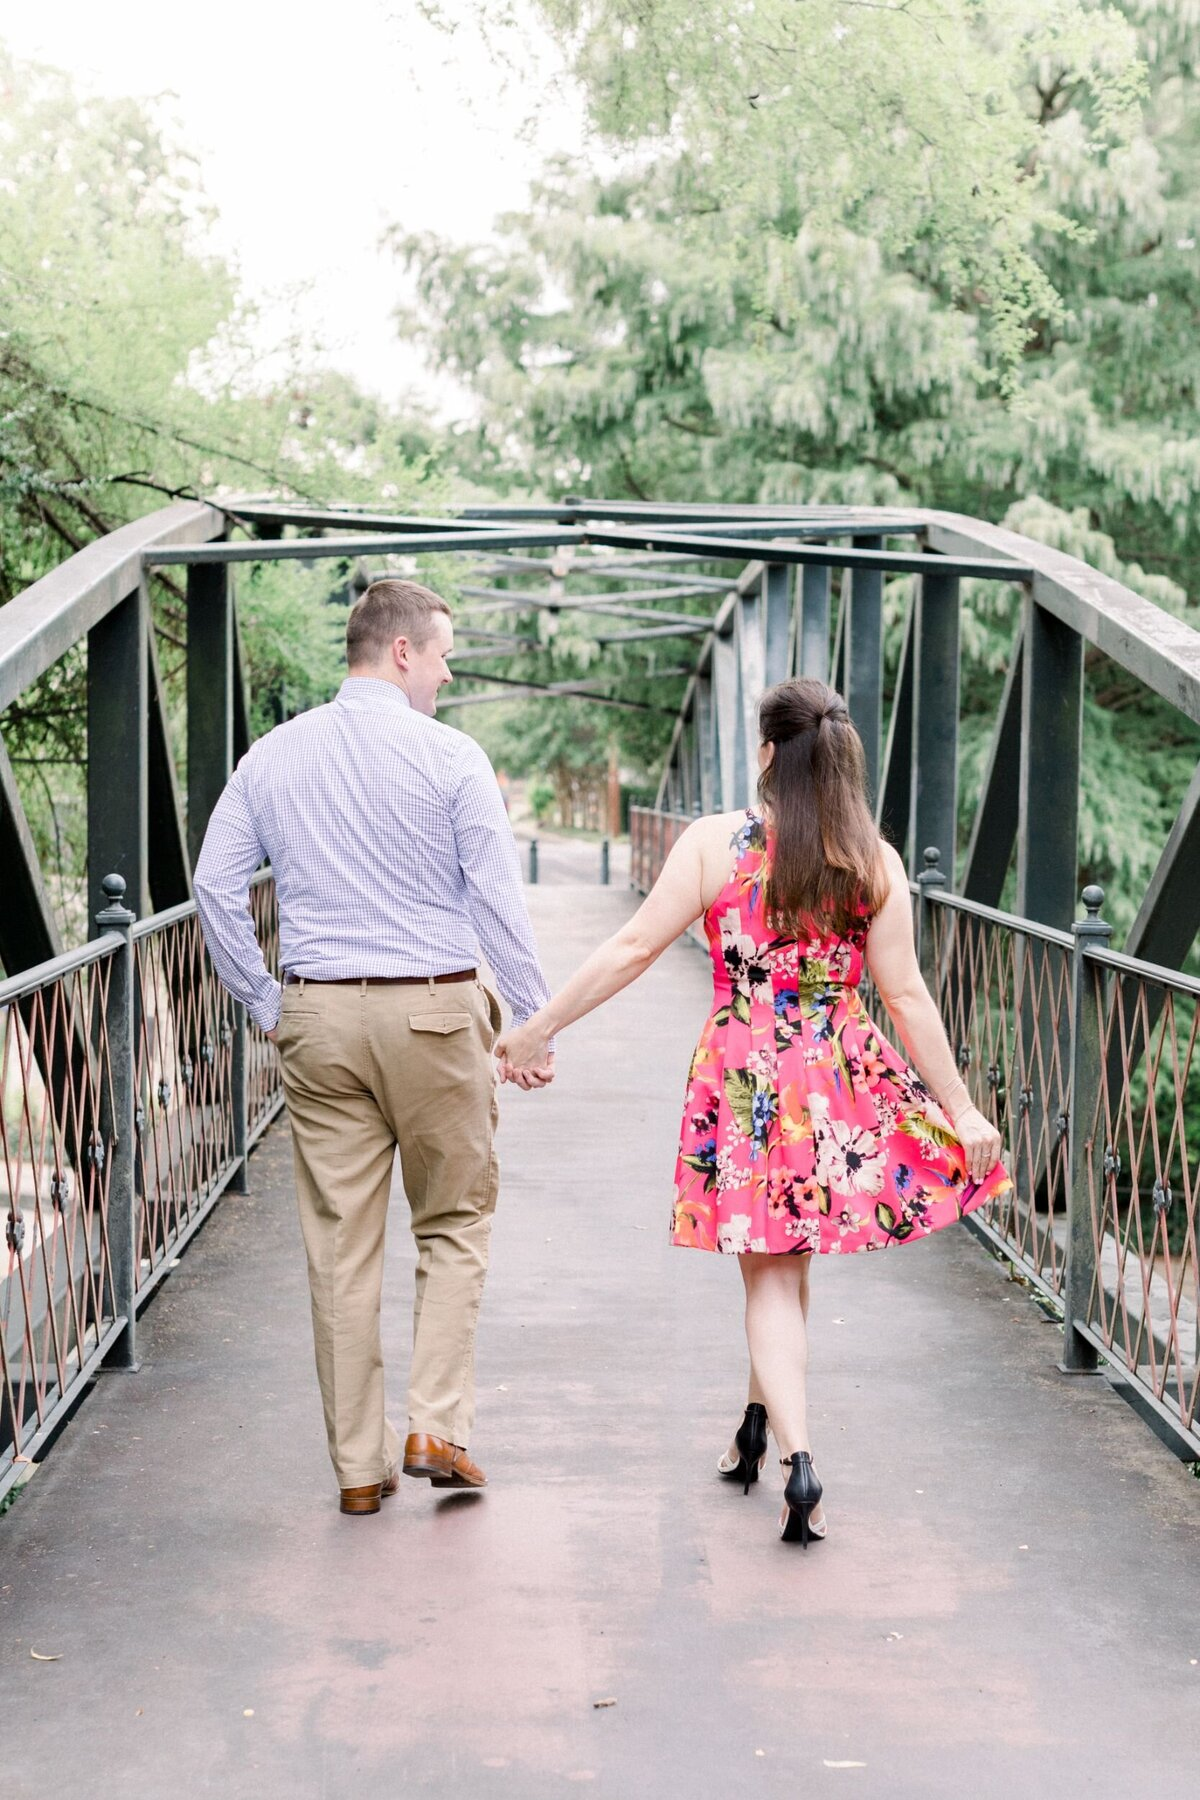 KingWilliamEngagement-AnnaKayPhotography-SanAntonioWeddingPhotographer-44